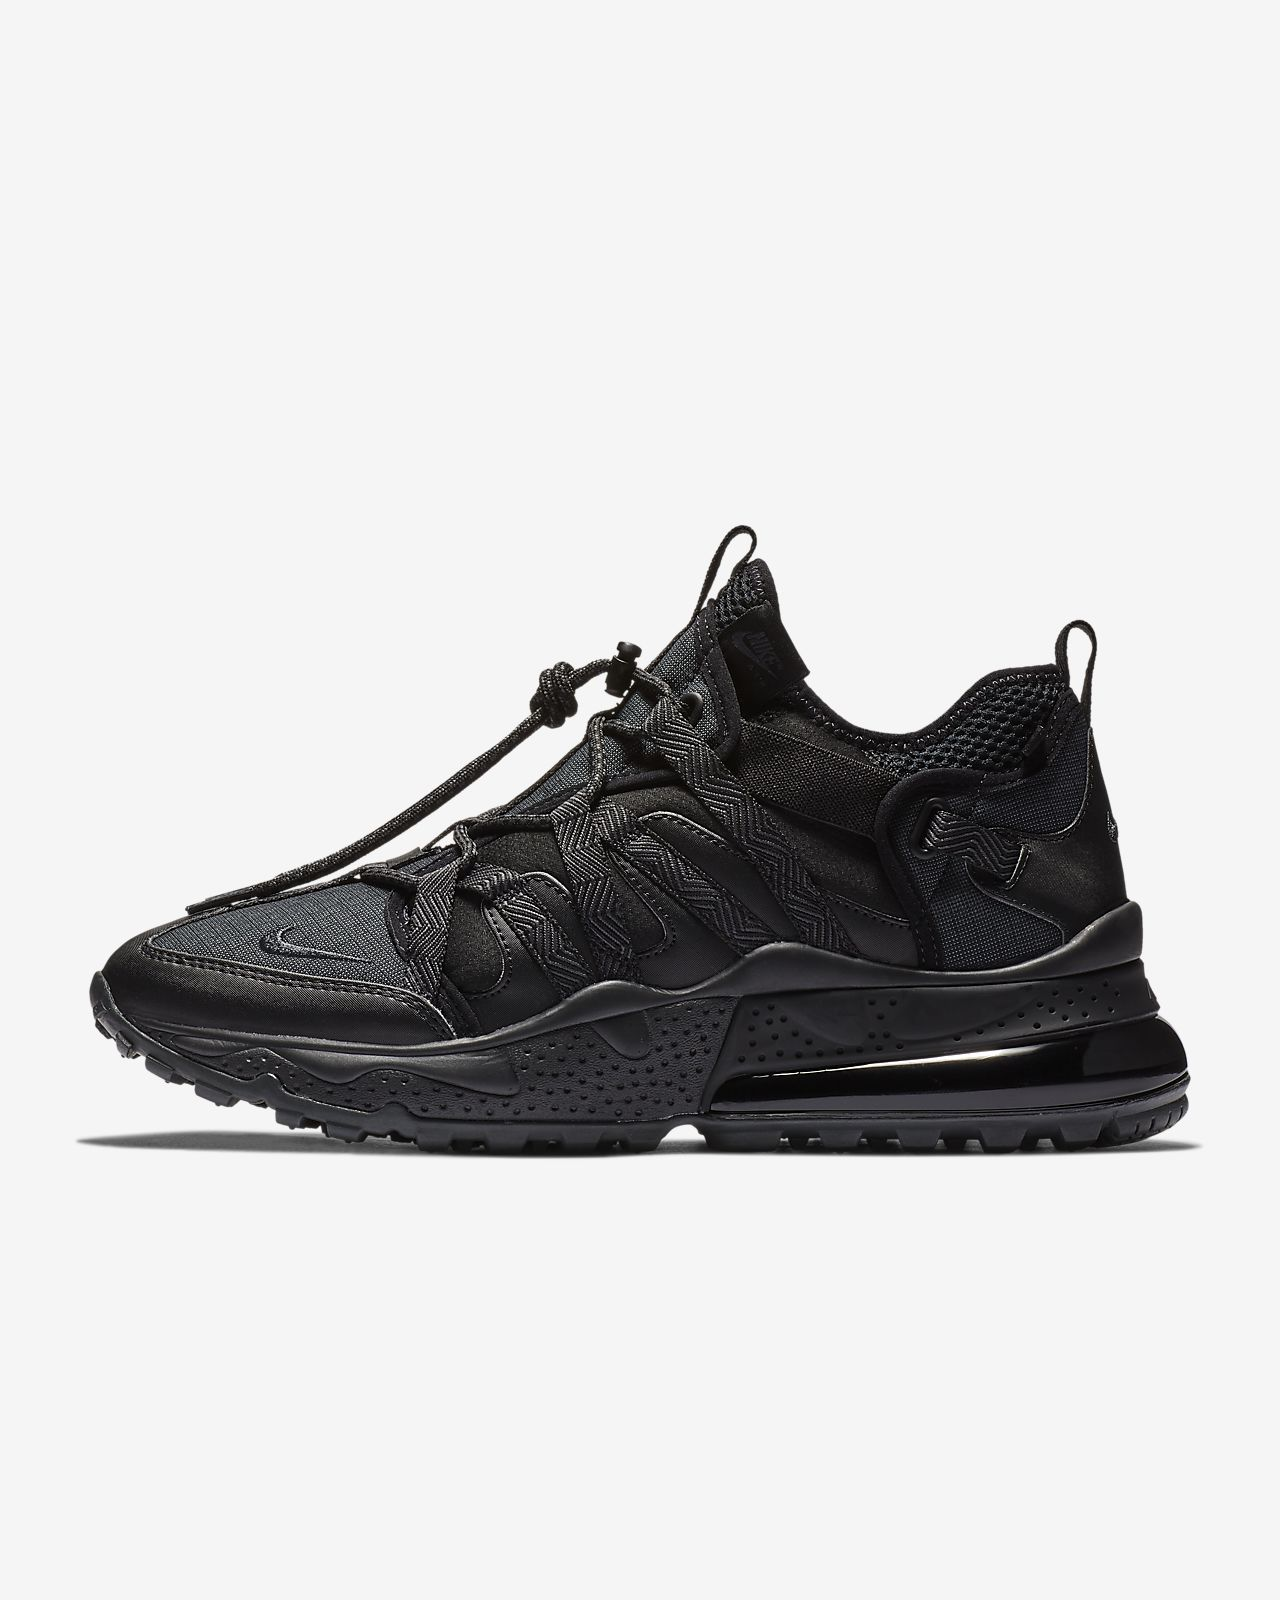 meet f57fa e851a ... Nike Air Max 270 Bowfin Men s Shoe